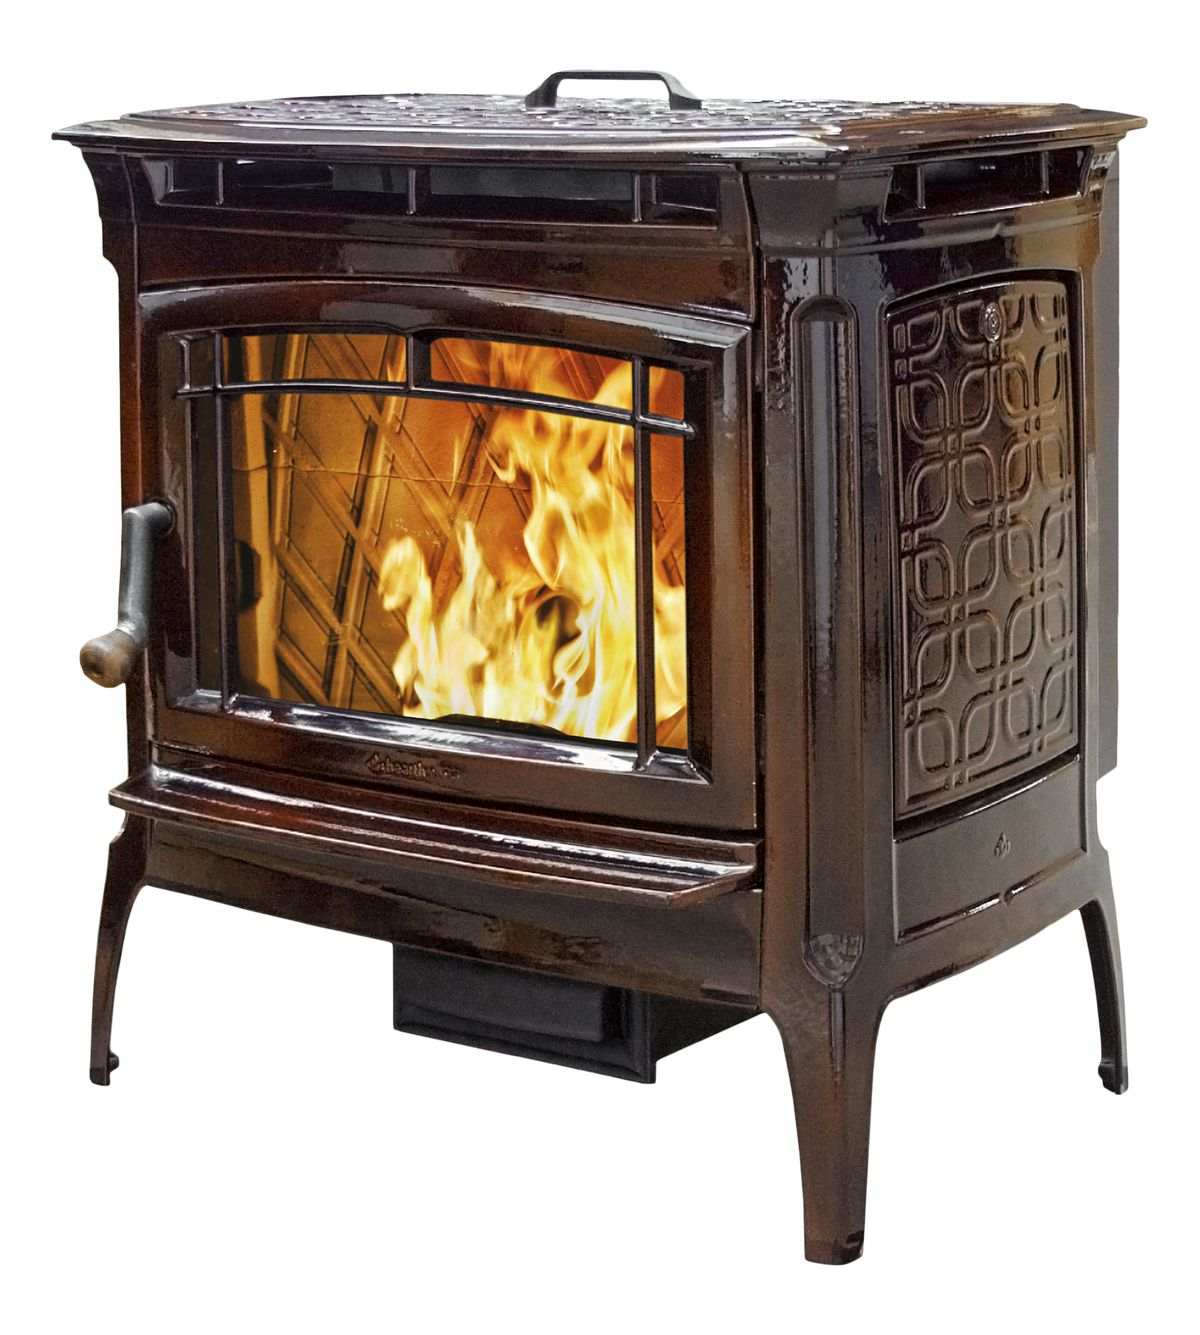 HearthStone Manchester Pellet Stove With Glass Door